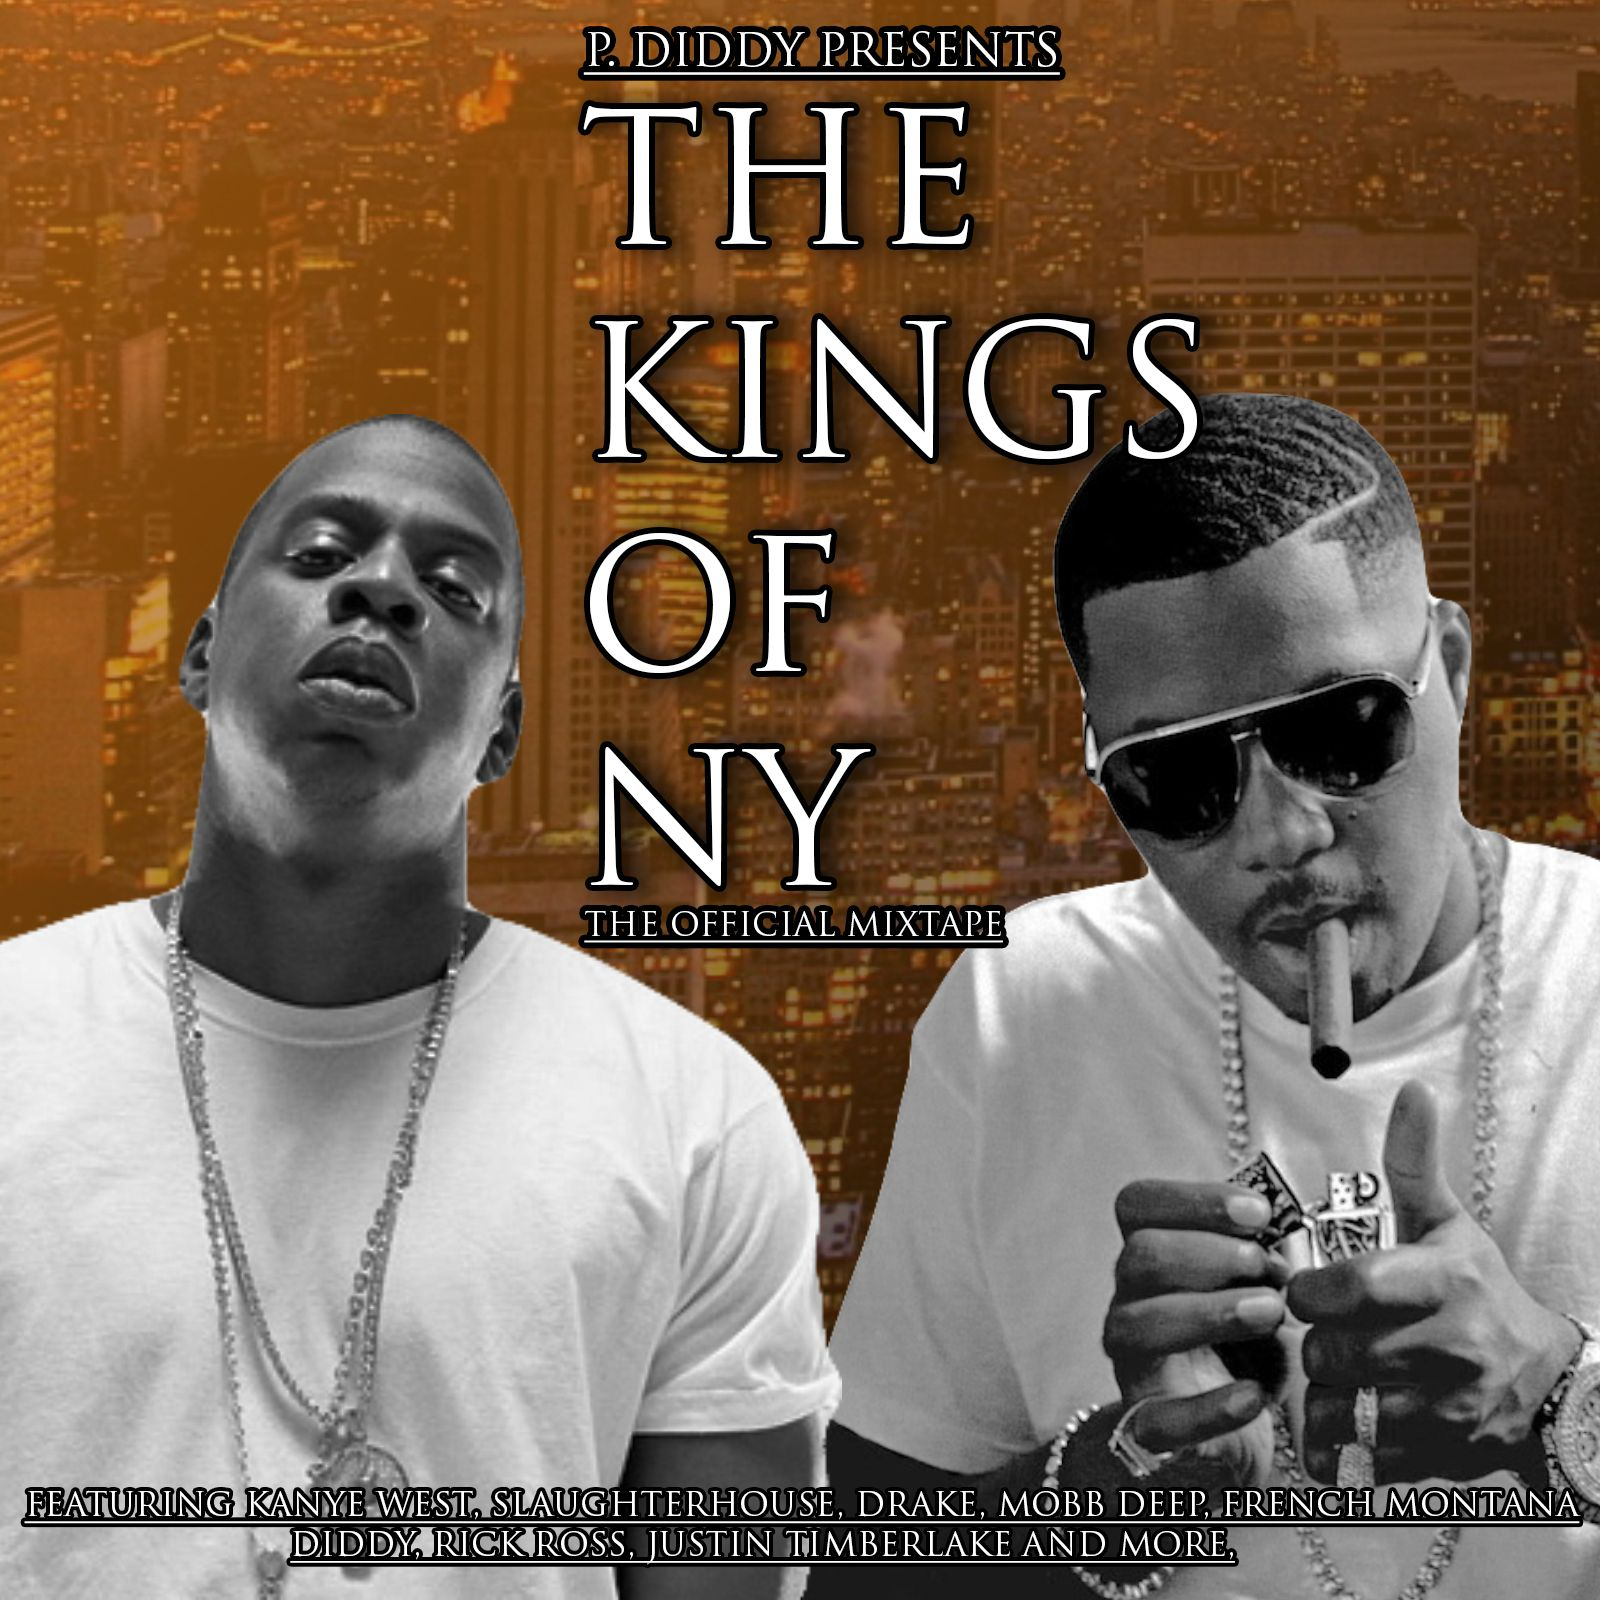 Jay z nas to come out with kings of ny mixtape music news jay z nas to come out with kings of ny mixtape music malvernweather Images